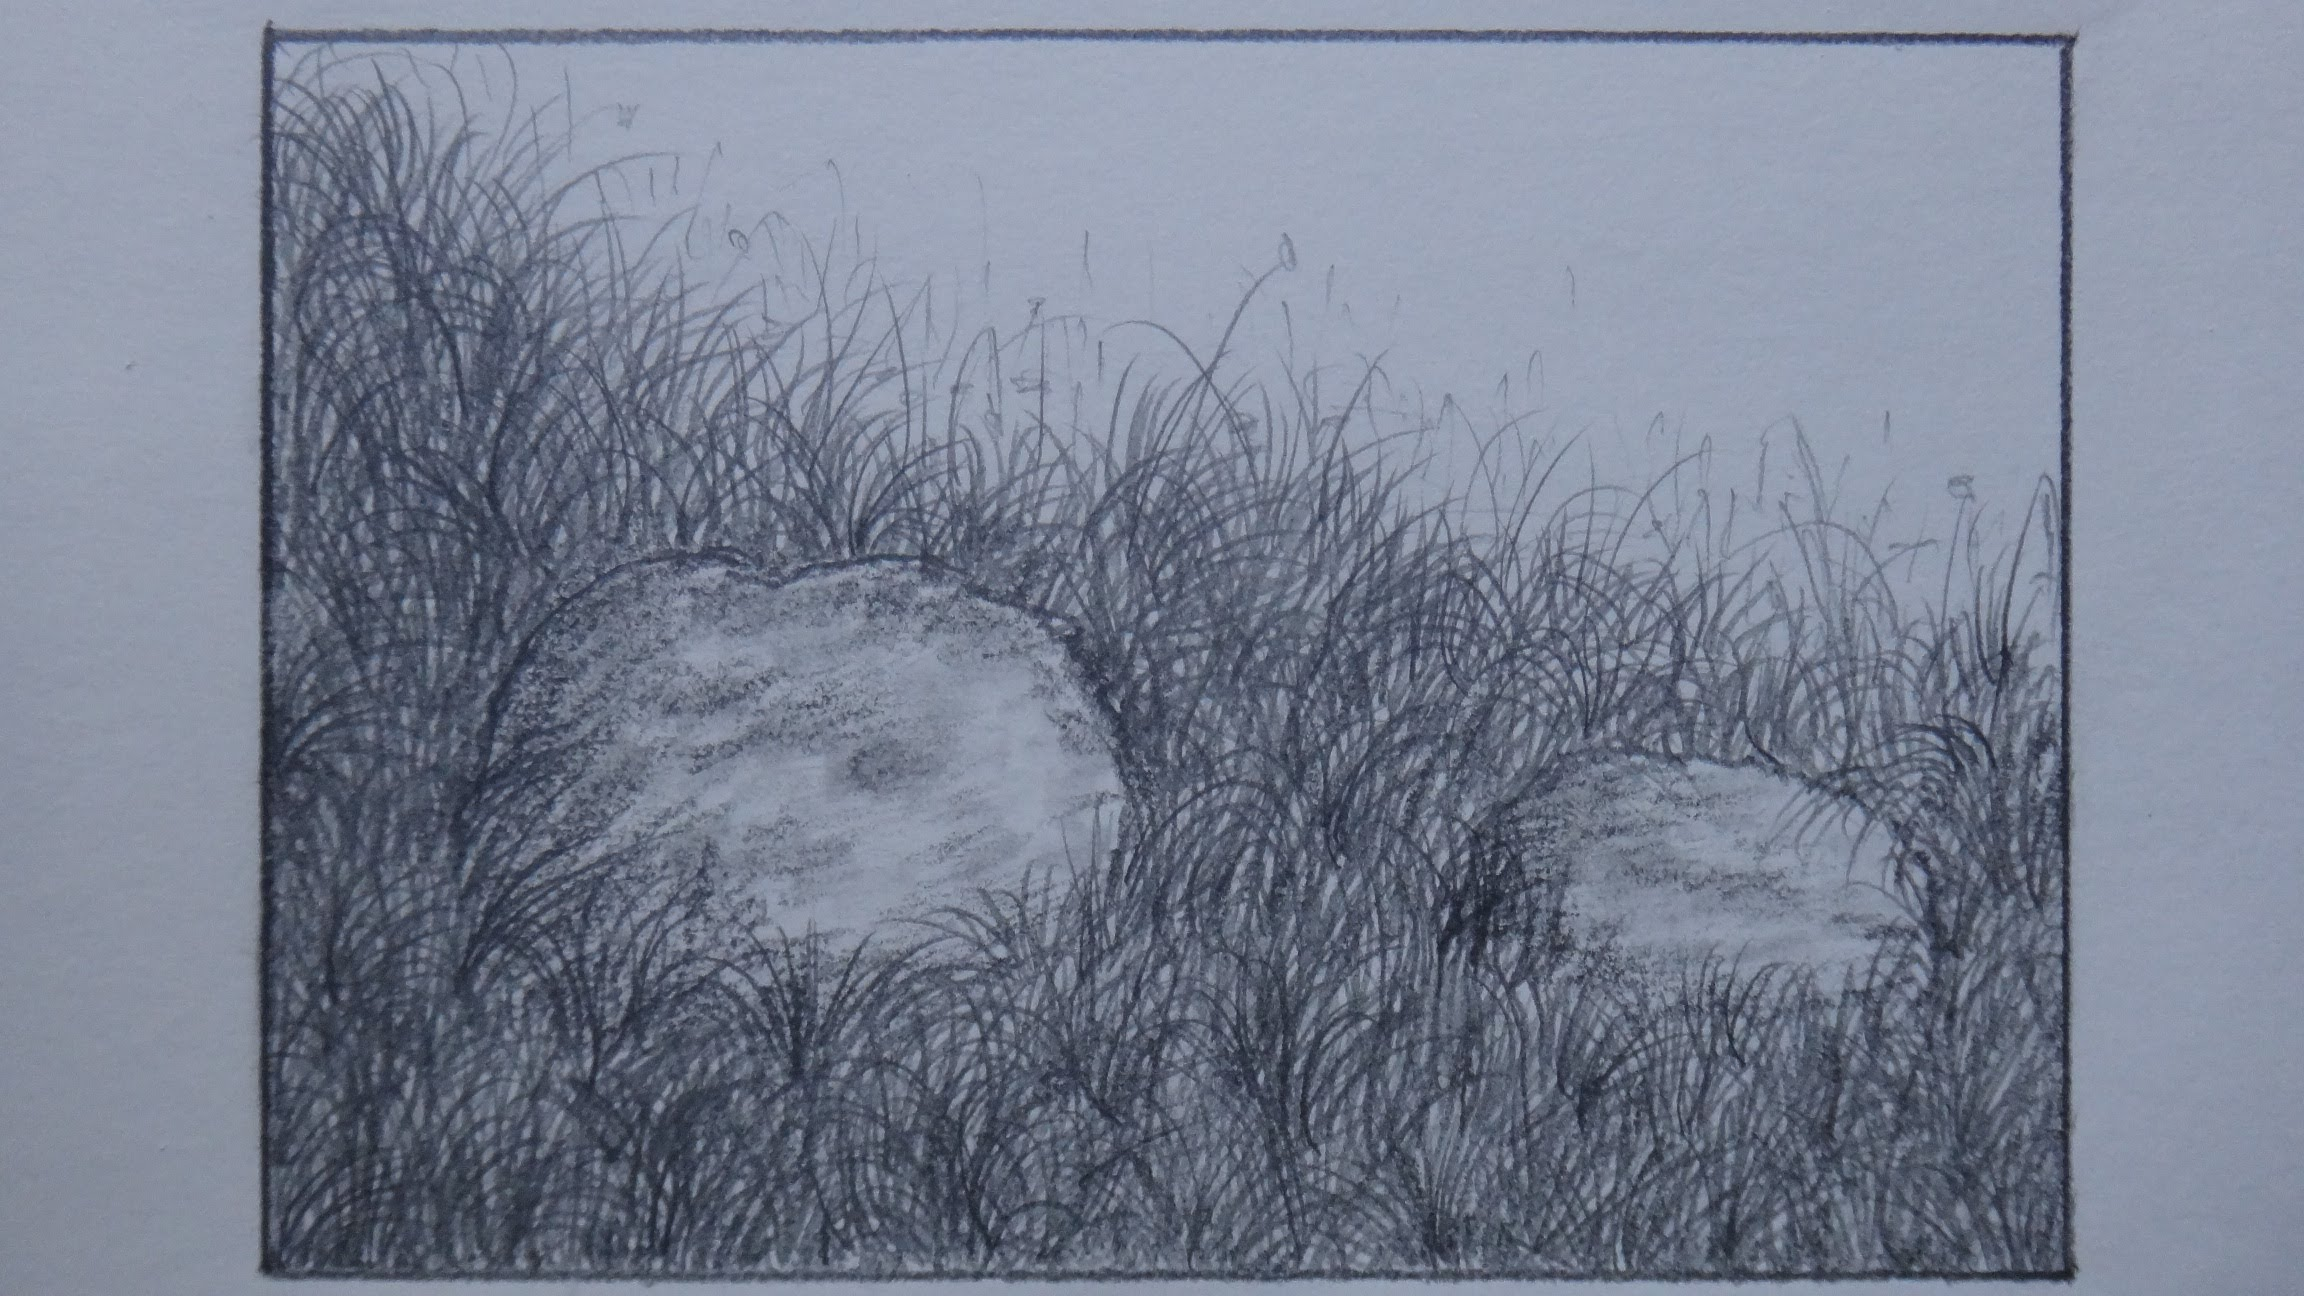 2304x1296 How To Draw Grass Using Pencil For Landscape